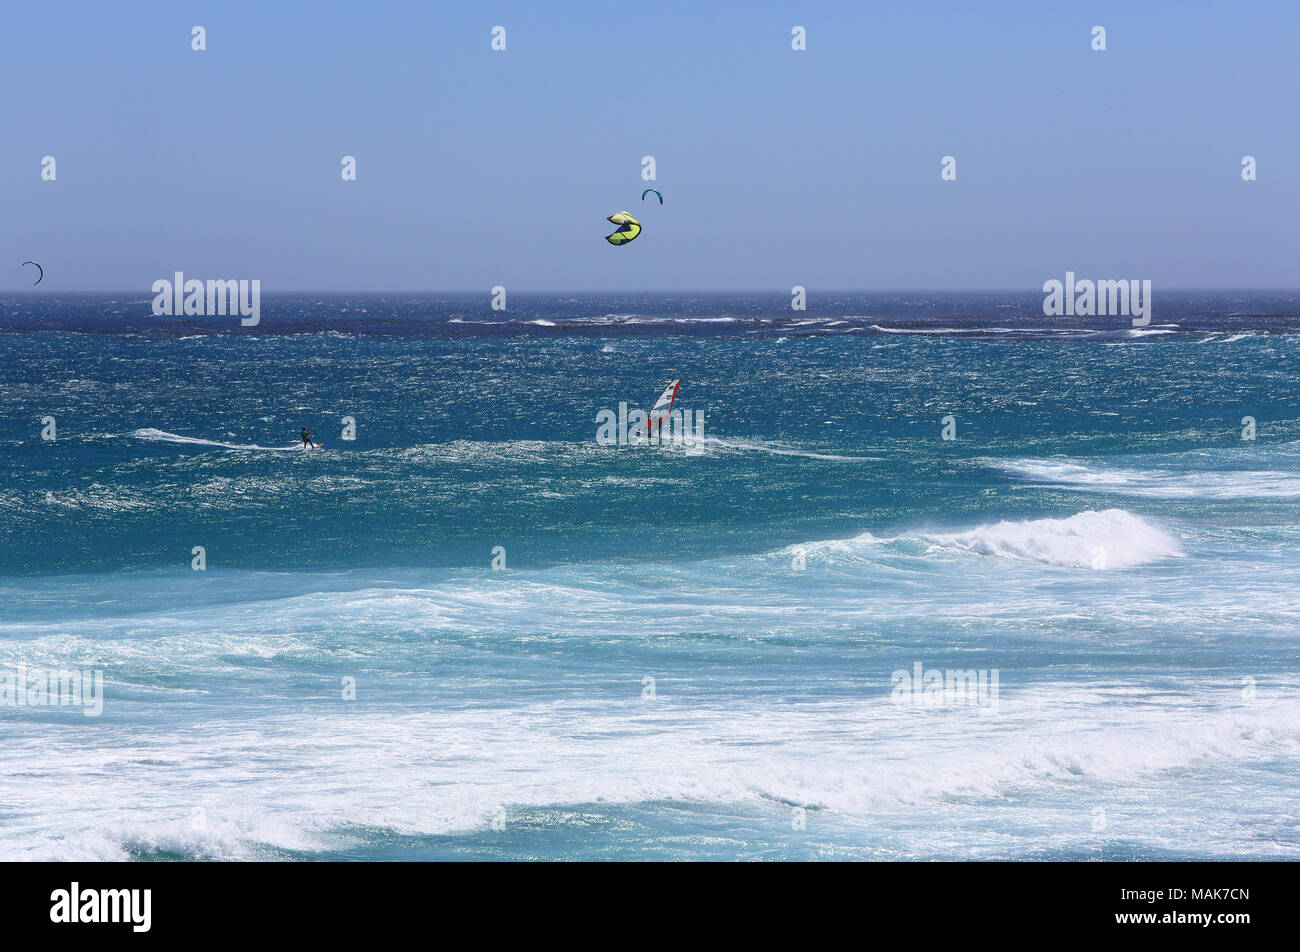 Water sports at the Cape of Good Hope, a rocky headland on the Atlantic coast of the Cape Peninsular, South Africa - Stock Image